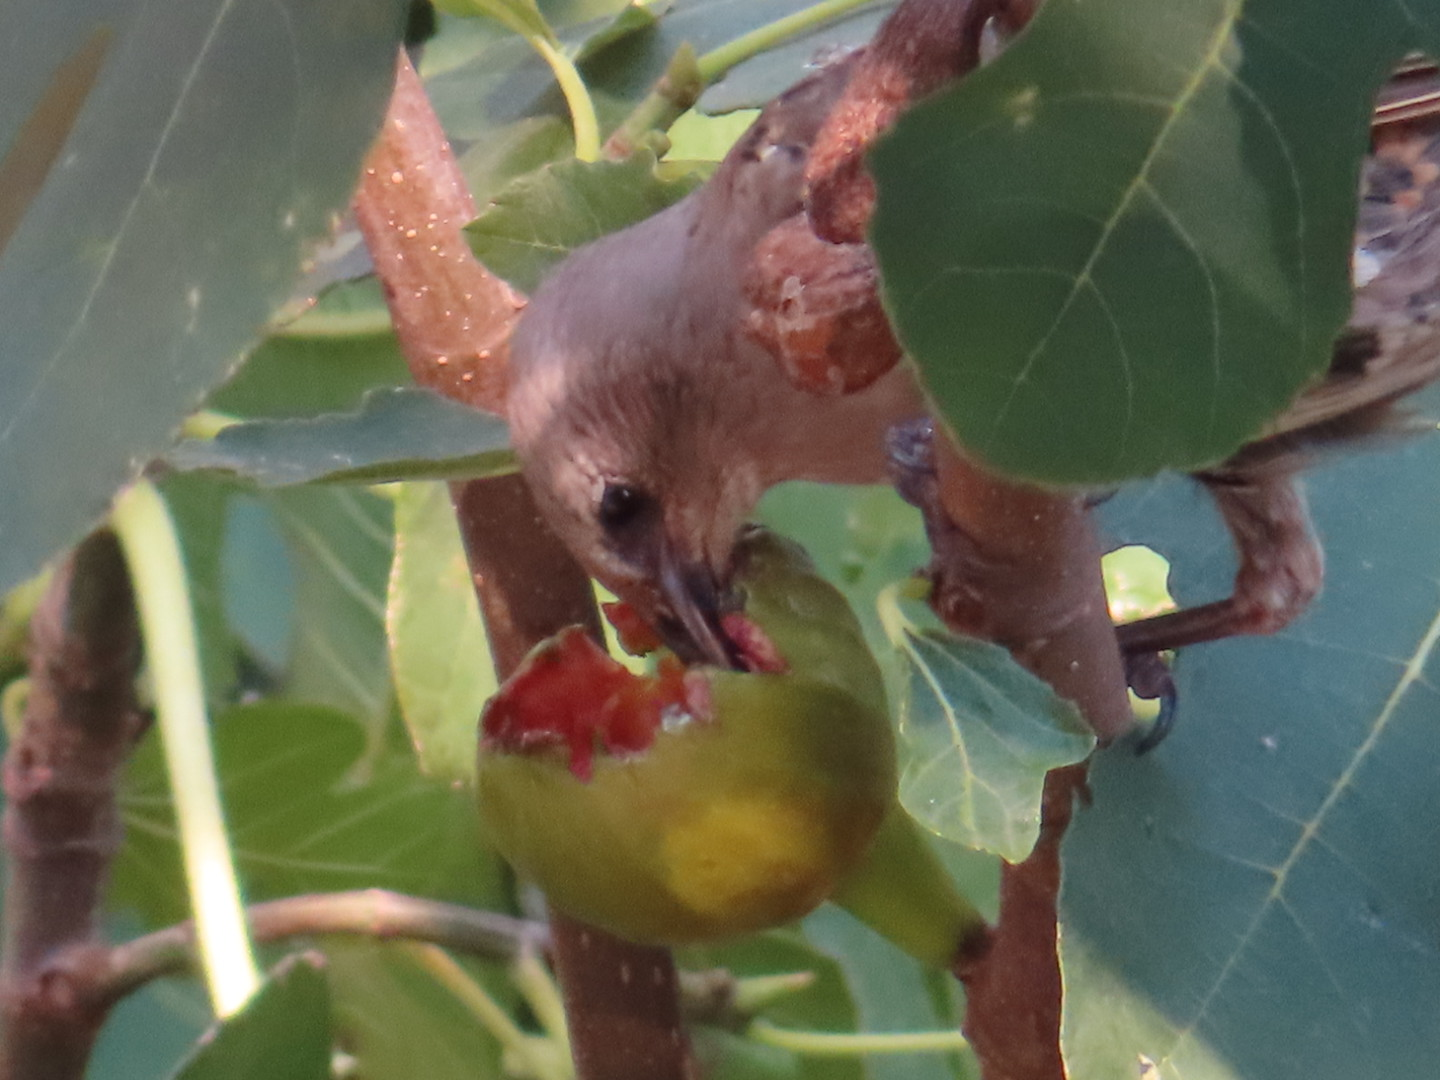 Starling eating a ripe fig